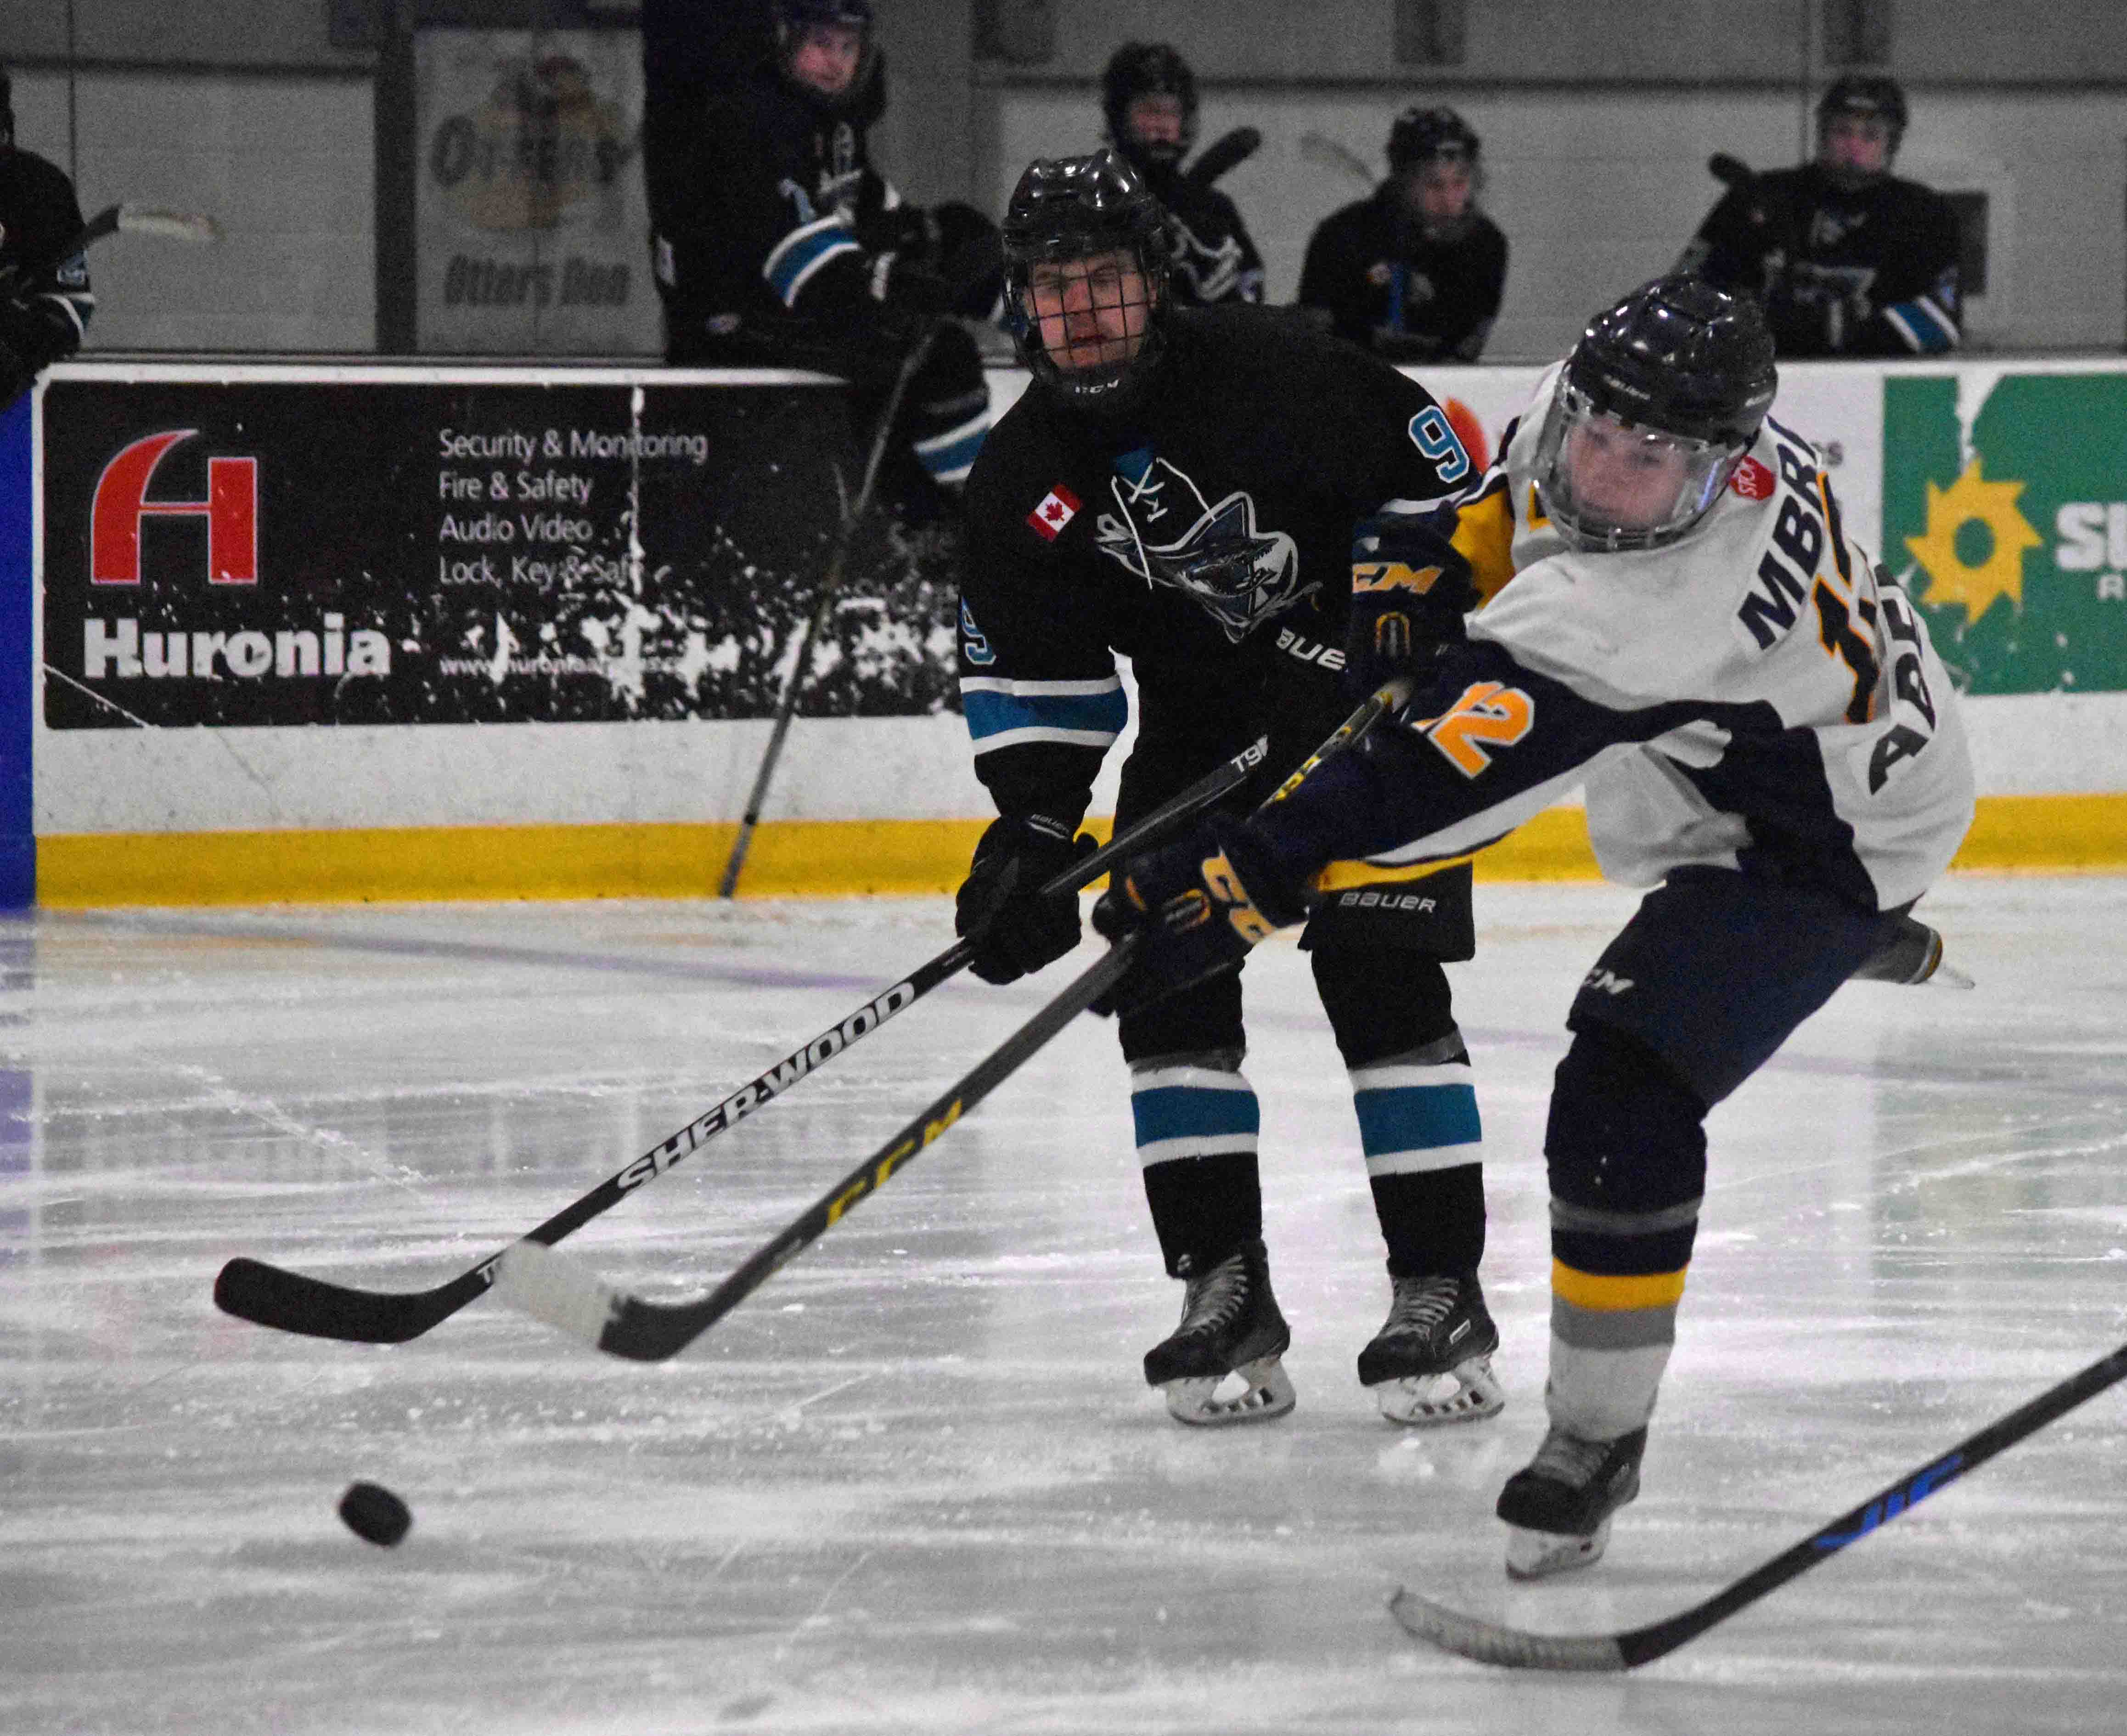 The MBRP Major Midget Otters ousted the Lindsay Muskies in the semi-finals